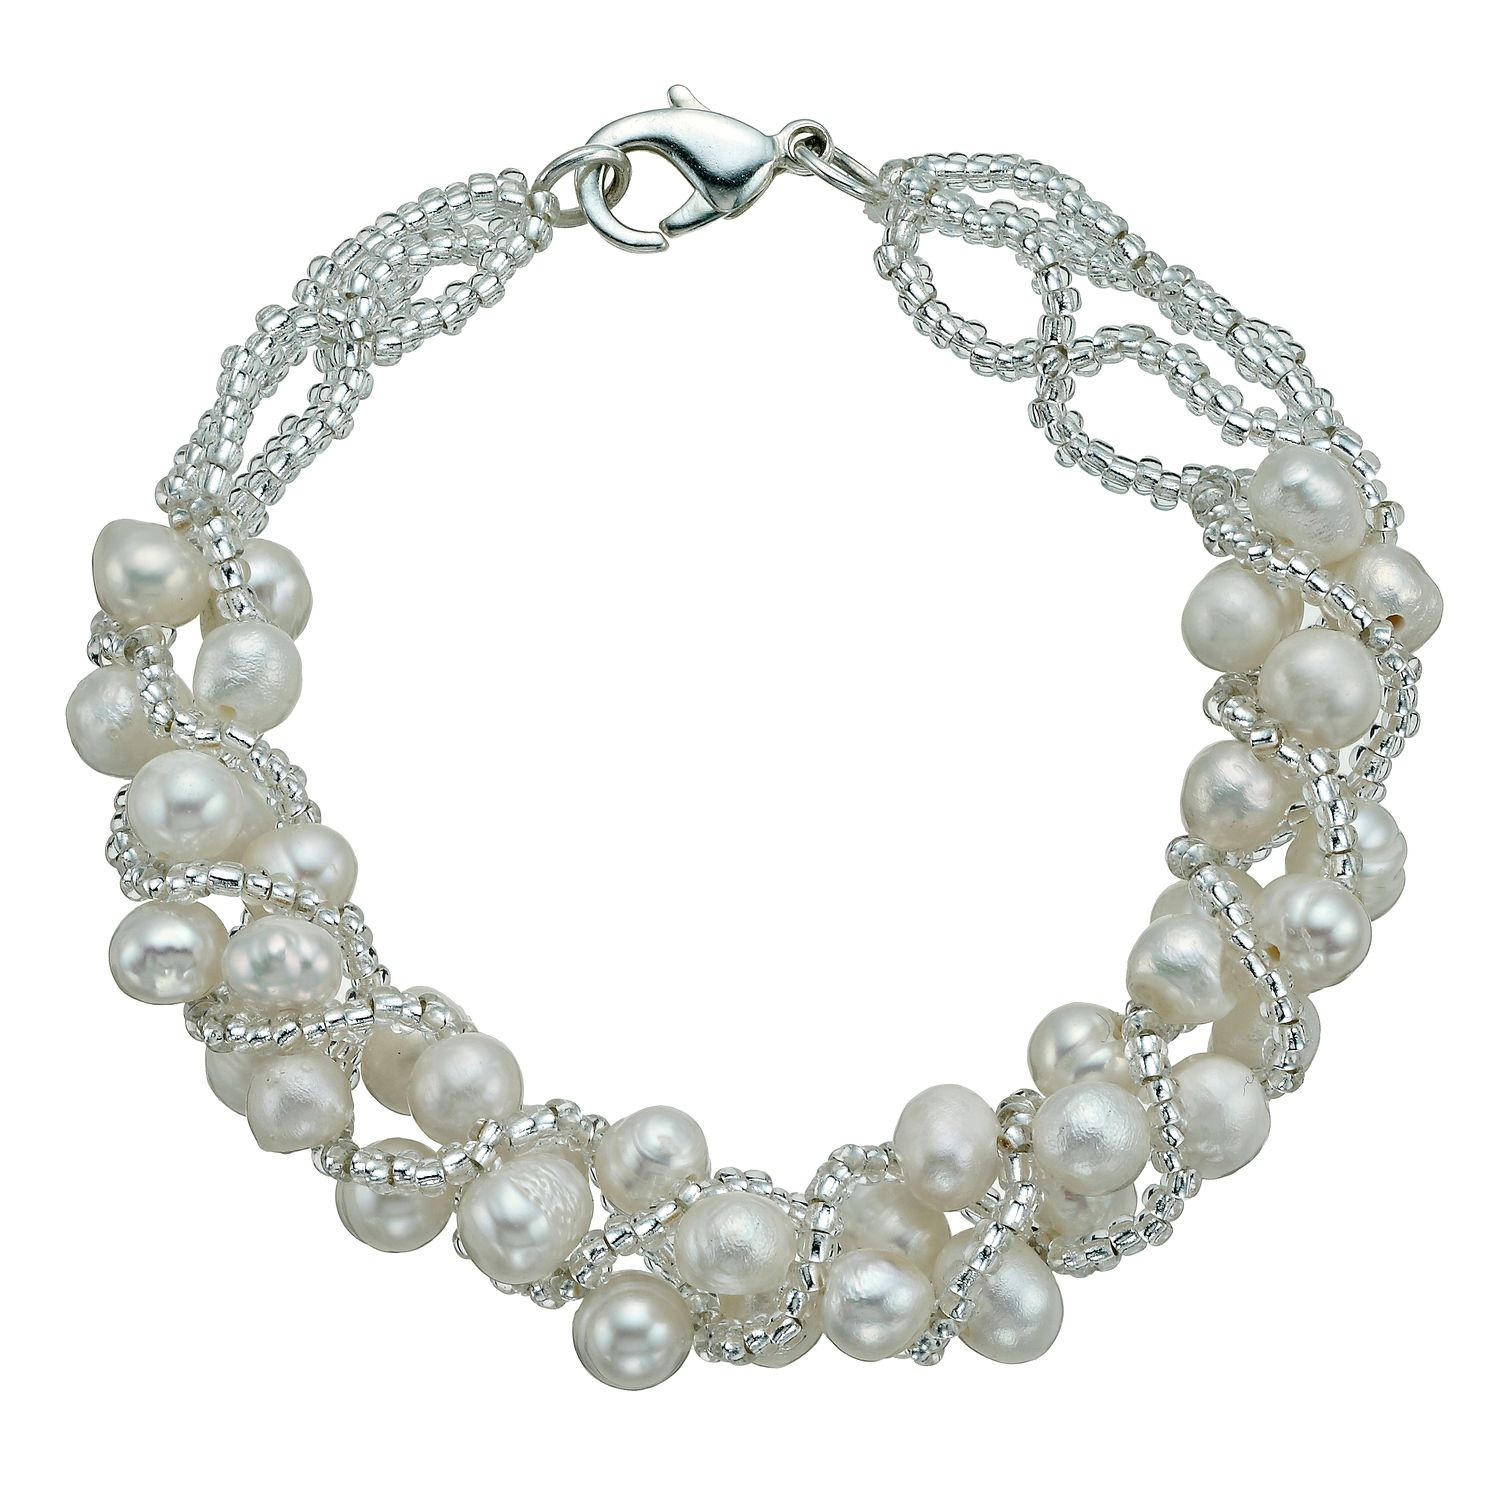 whinney chains and jewellery maryberrrycovershot pearl harriet pearls cultured